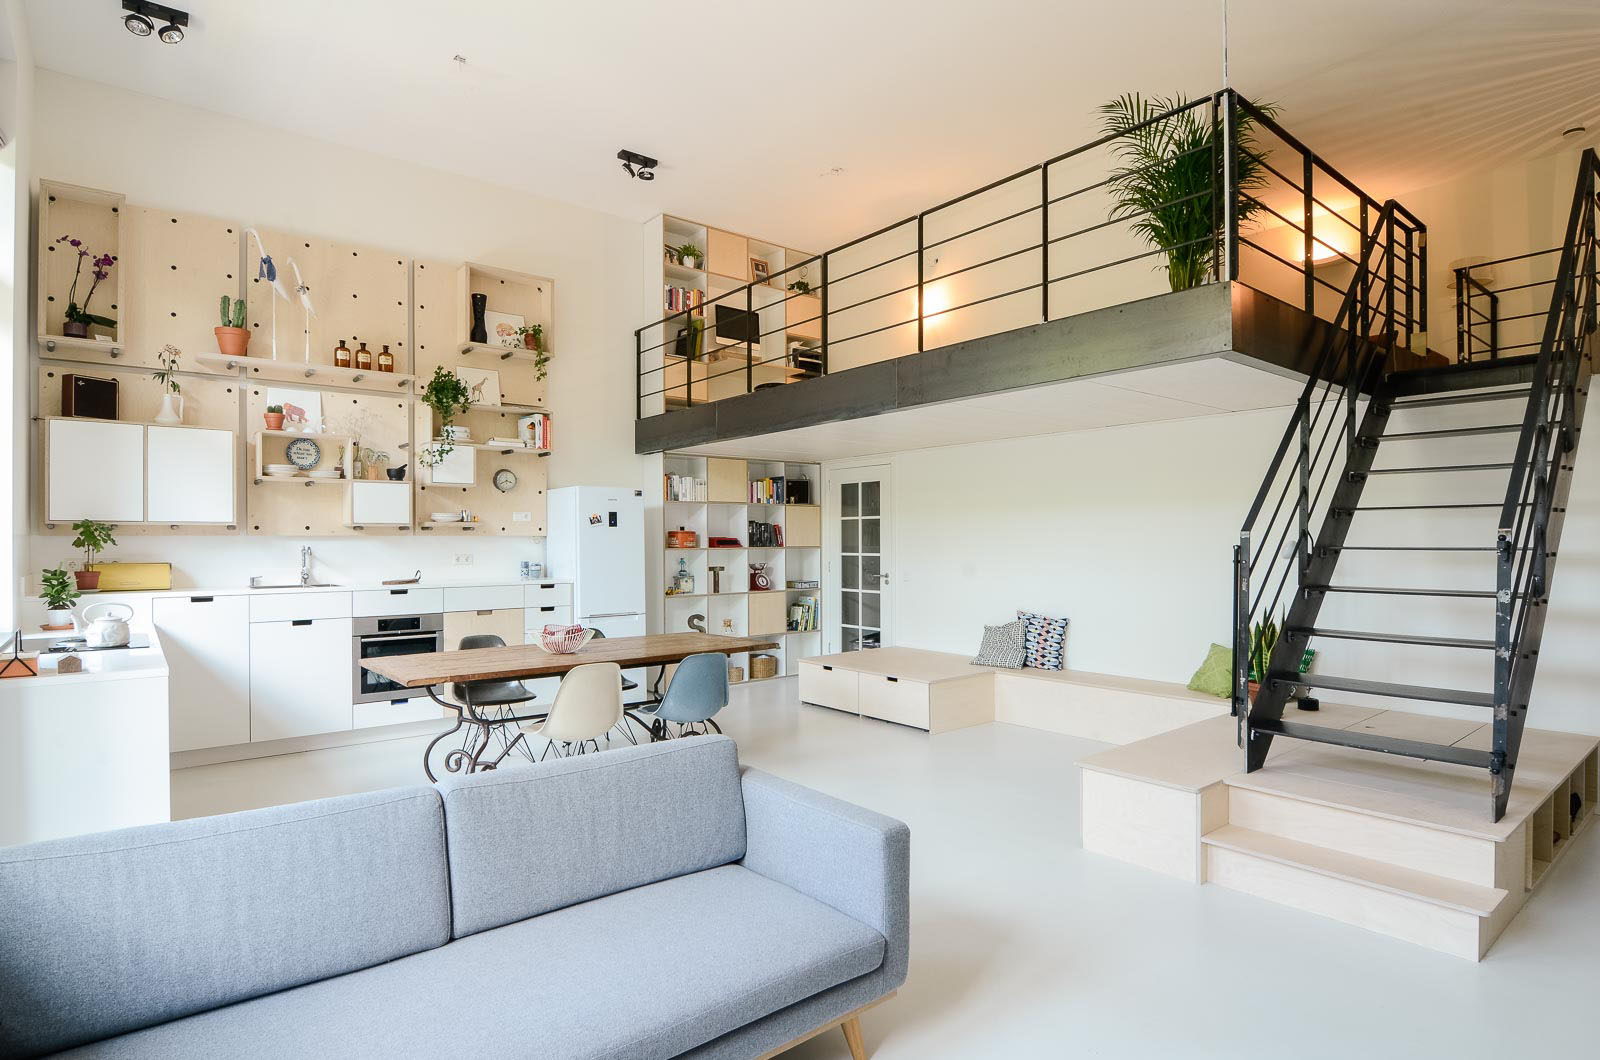 Efficiency Apartment Vs Studio Old School Building Converted Into Modern Family Loft